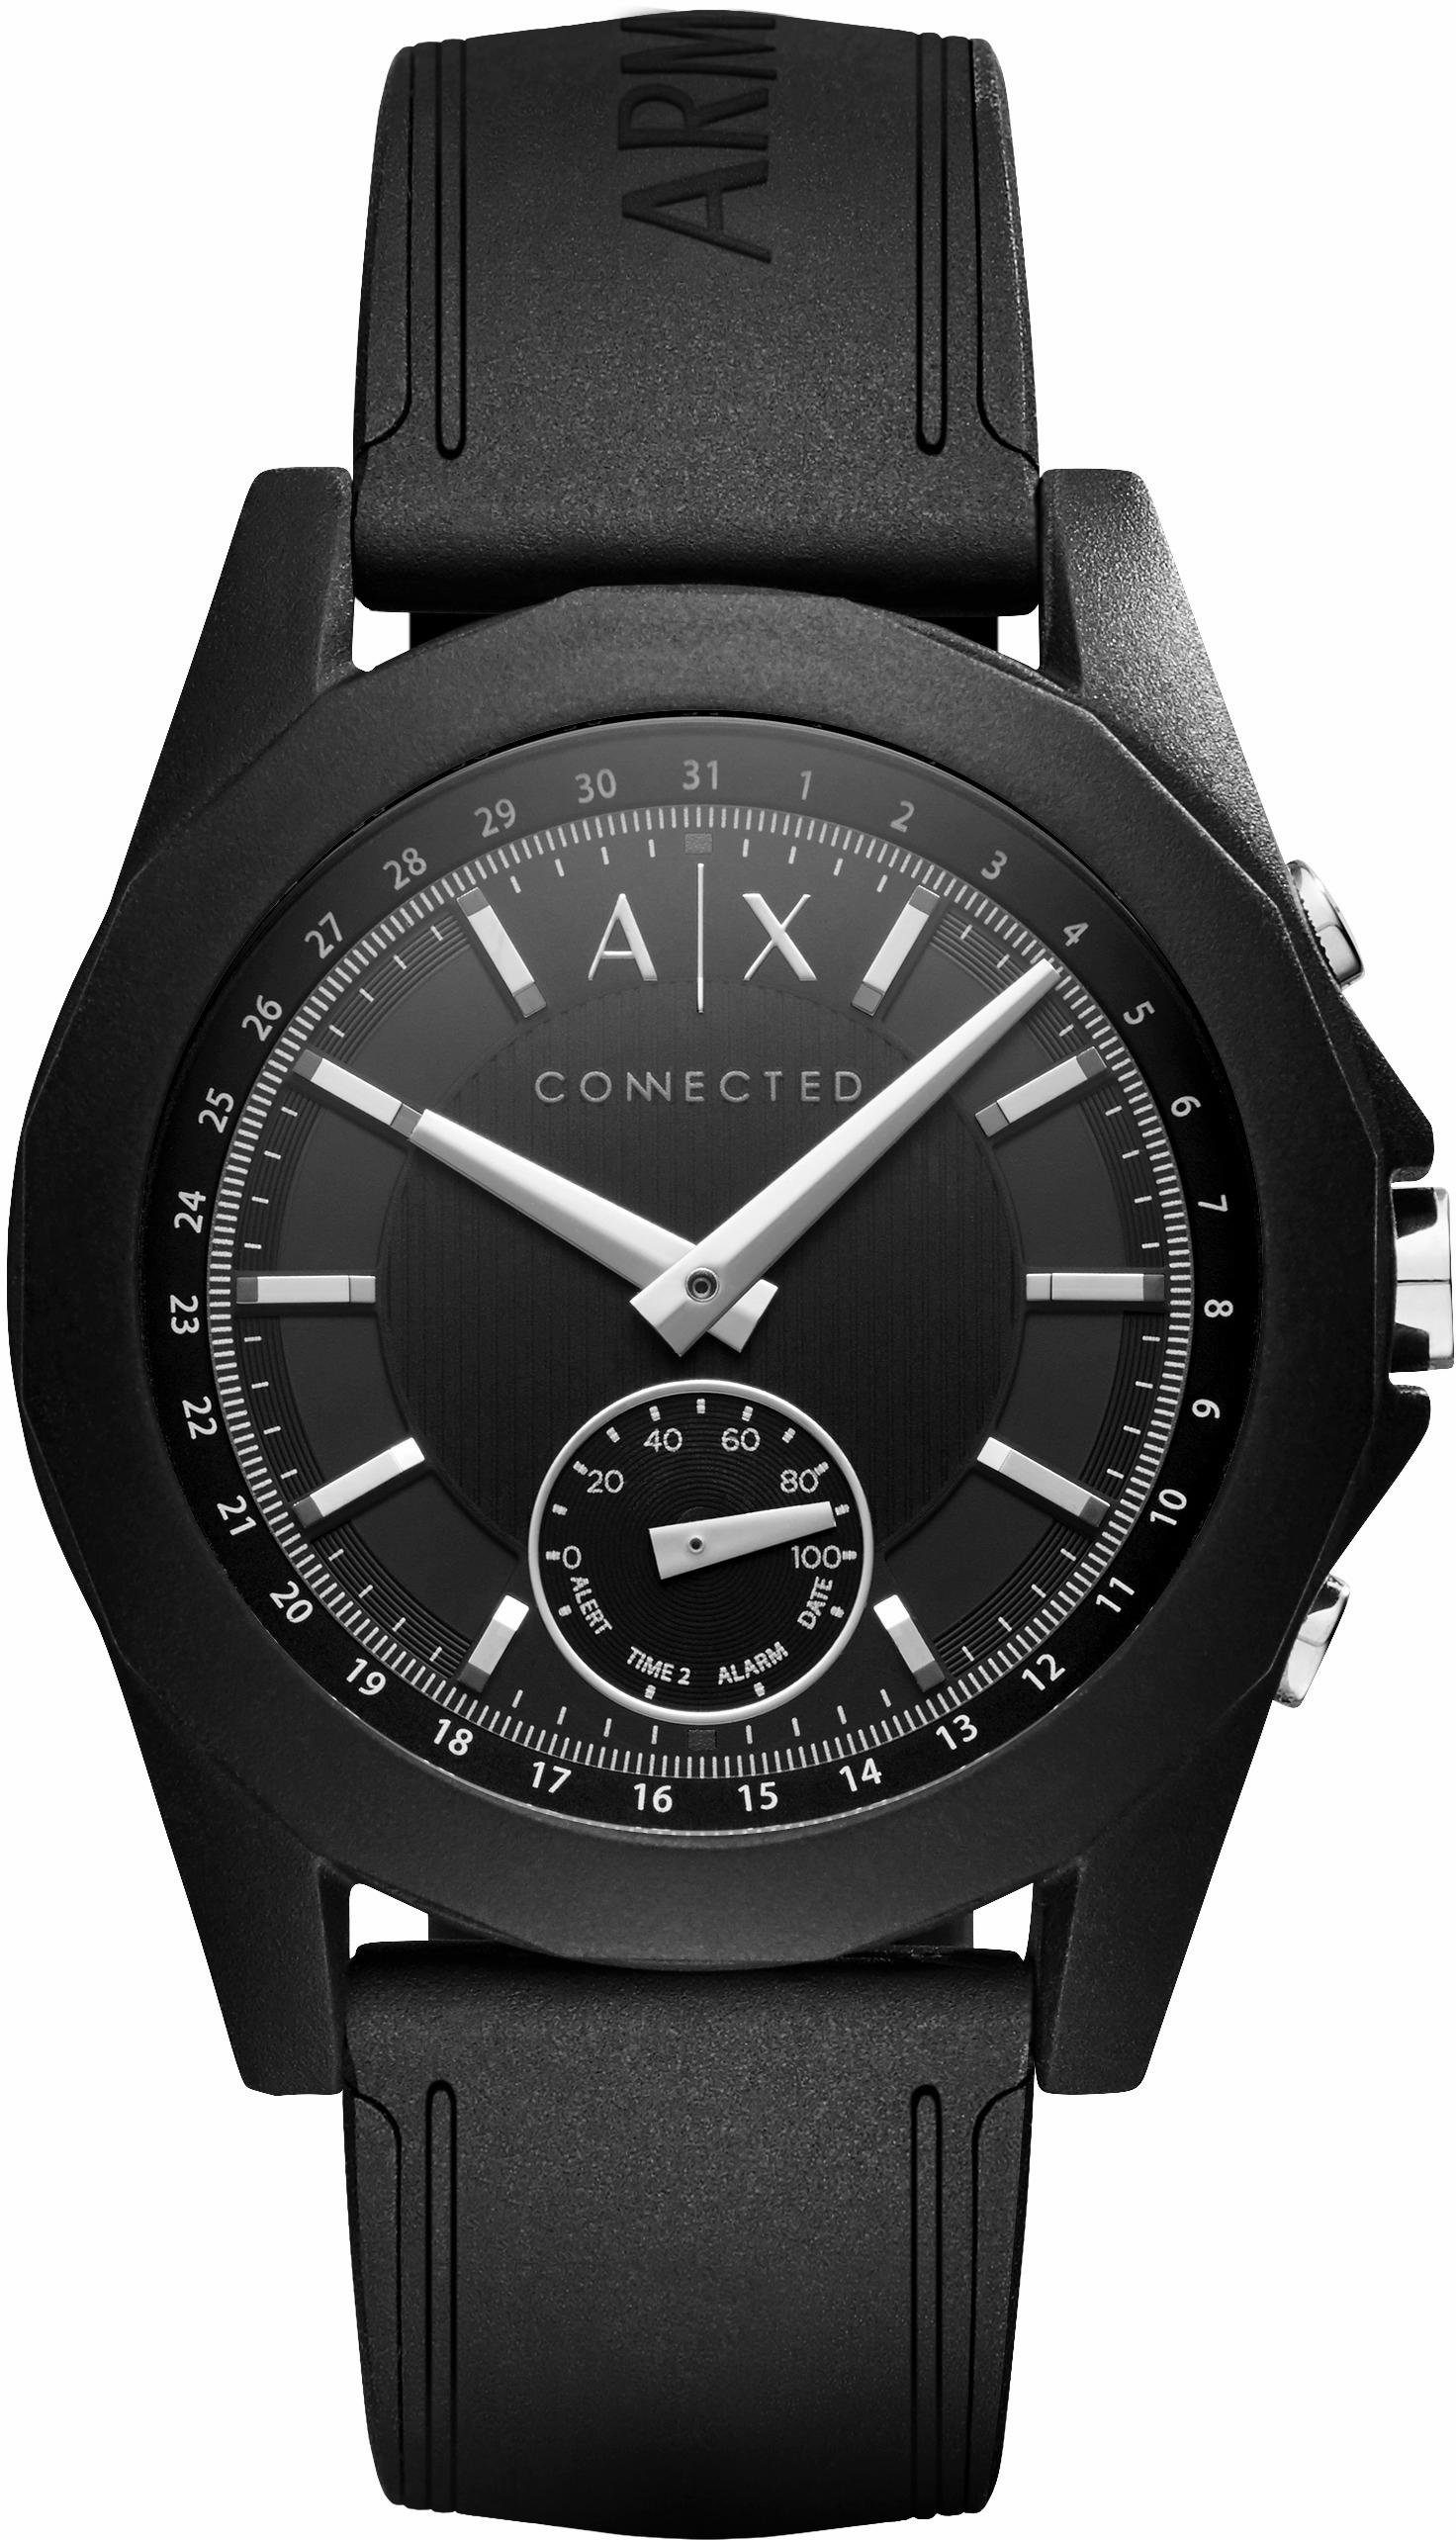 Armani Exchange Connected AXT1001 Smartwatch (Android Wear)